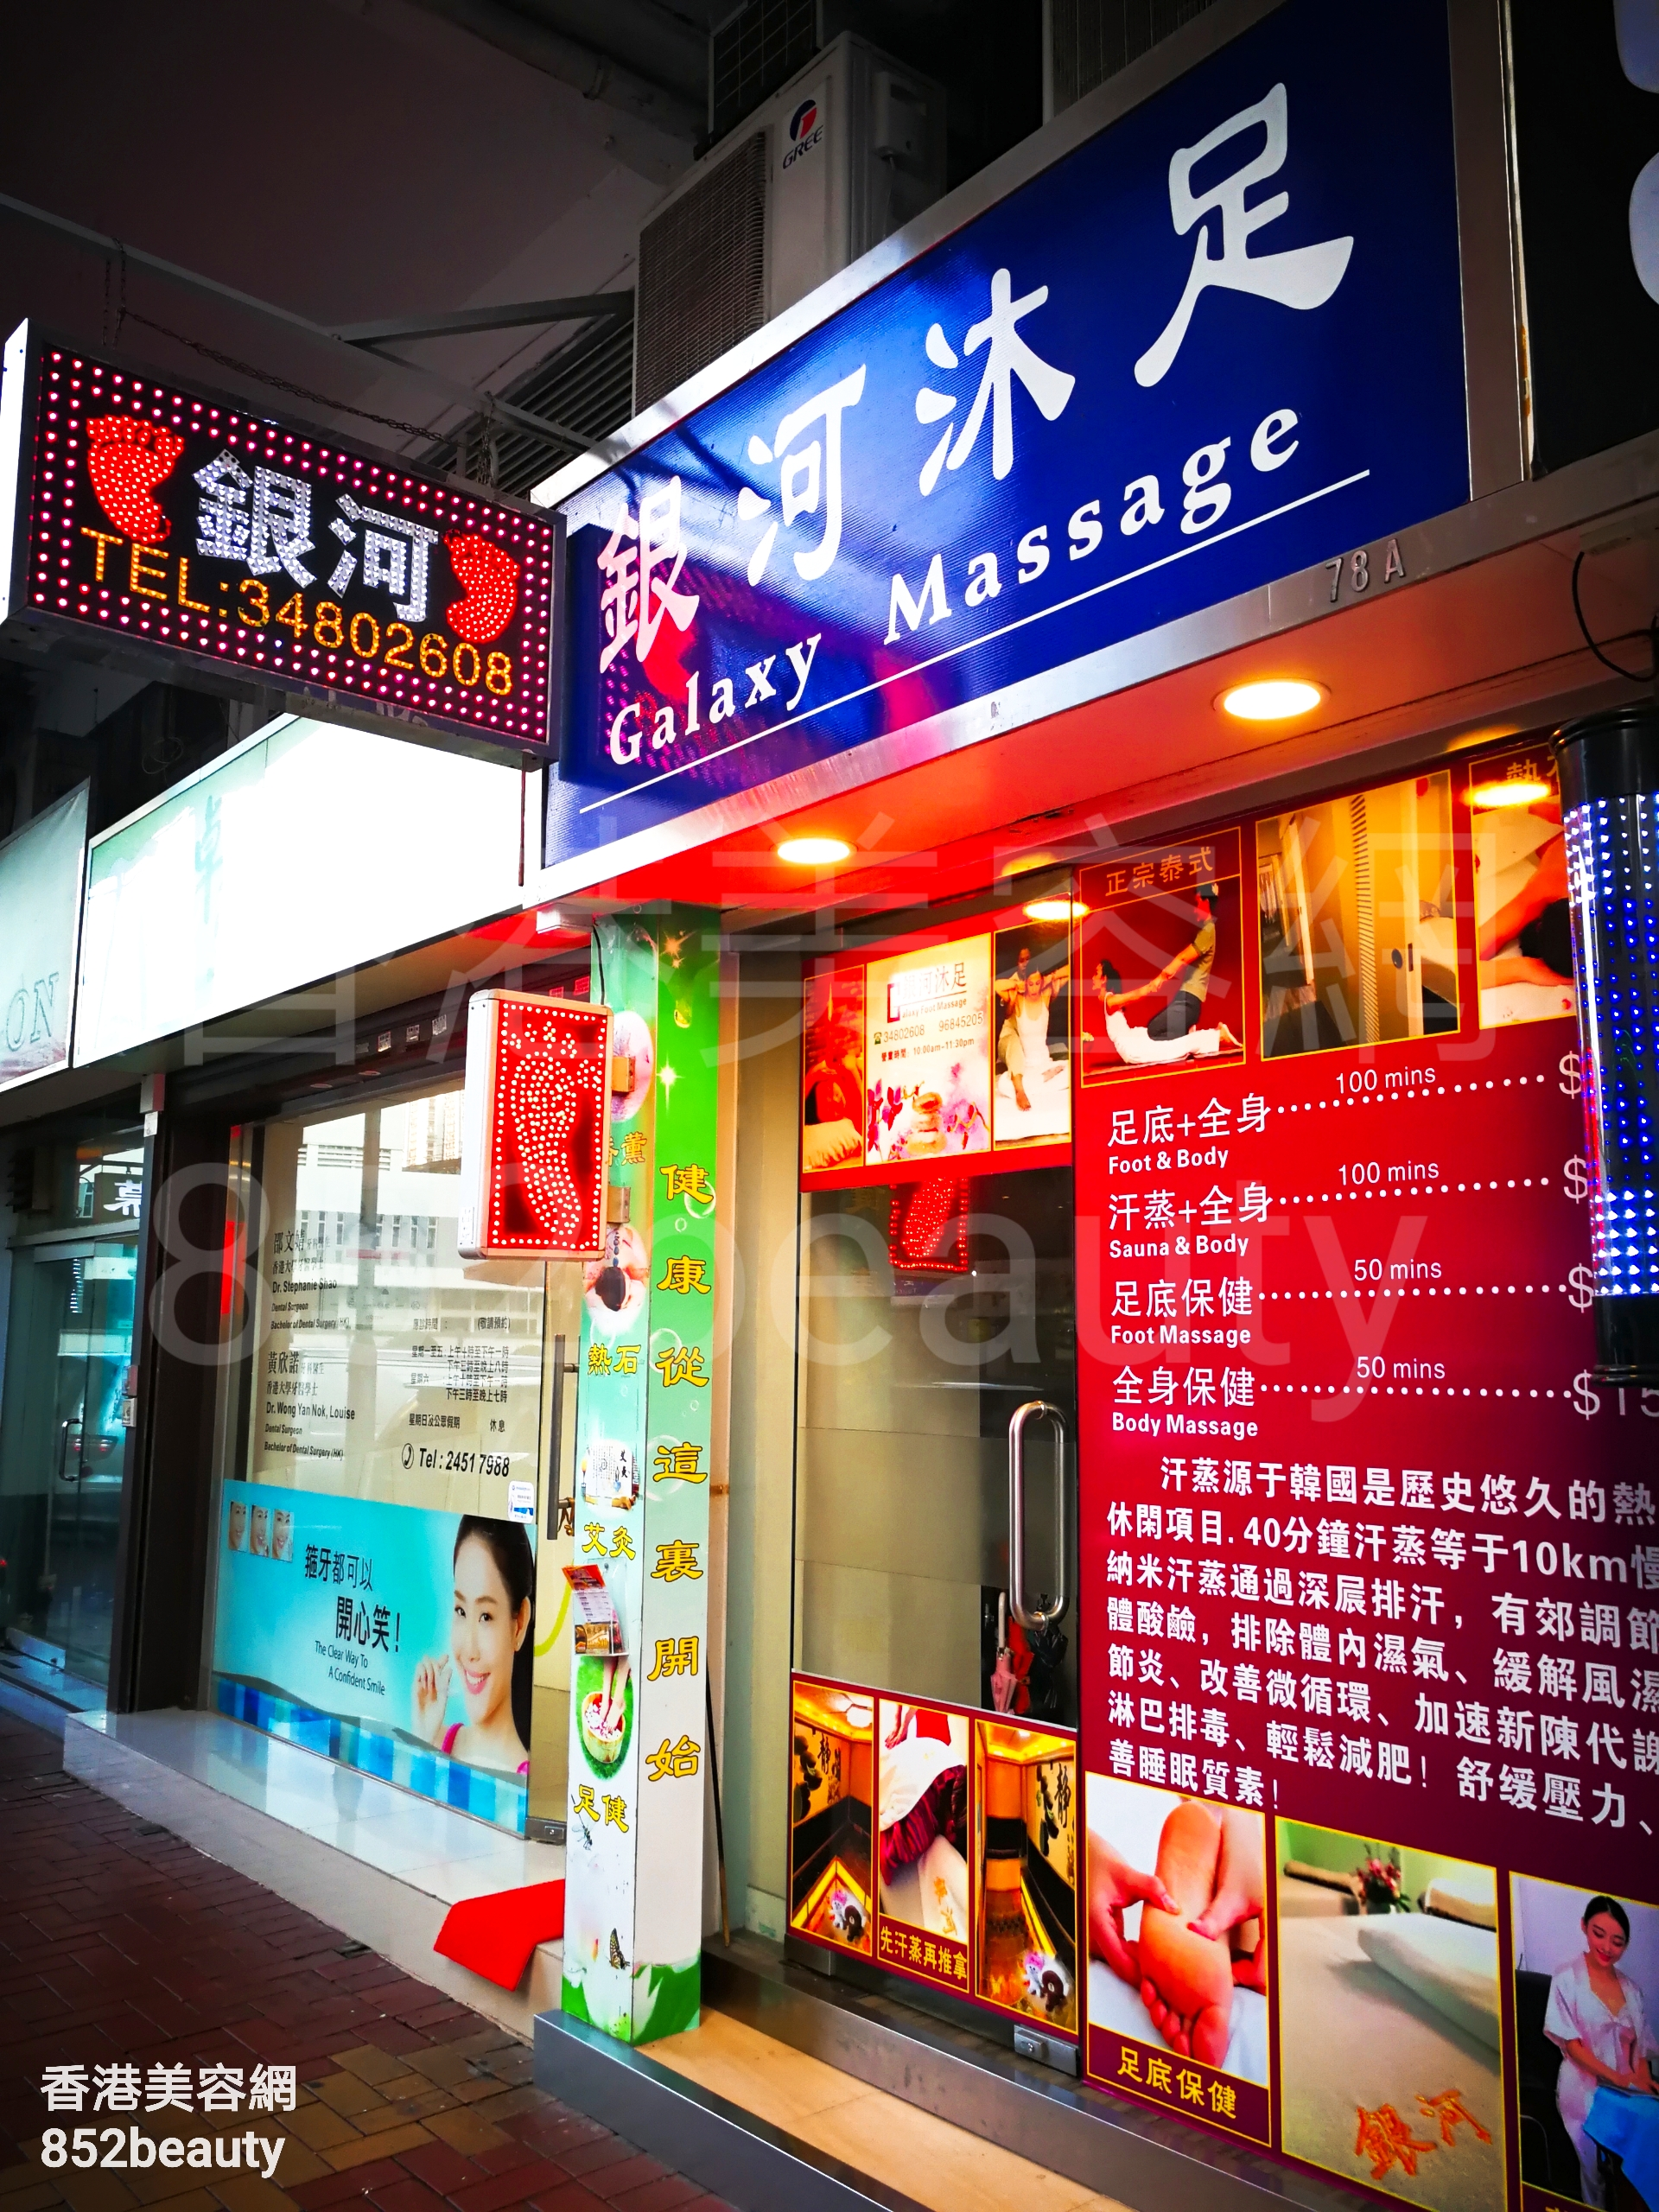 美容院 Beauty Salon: 銀河沐足Galaxy Massage